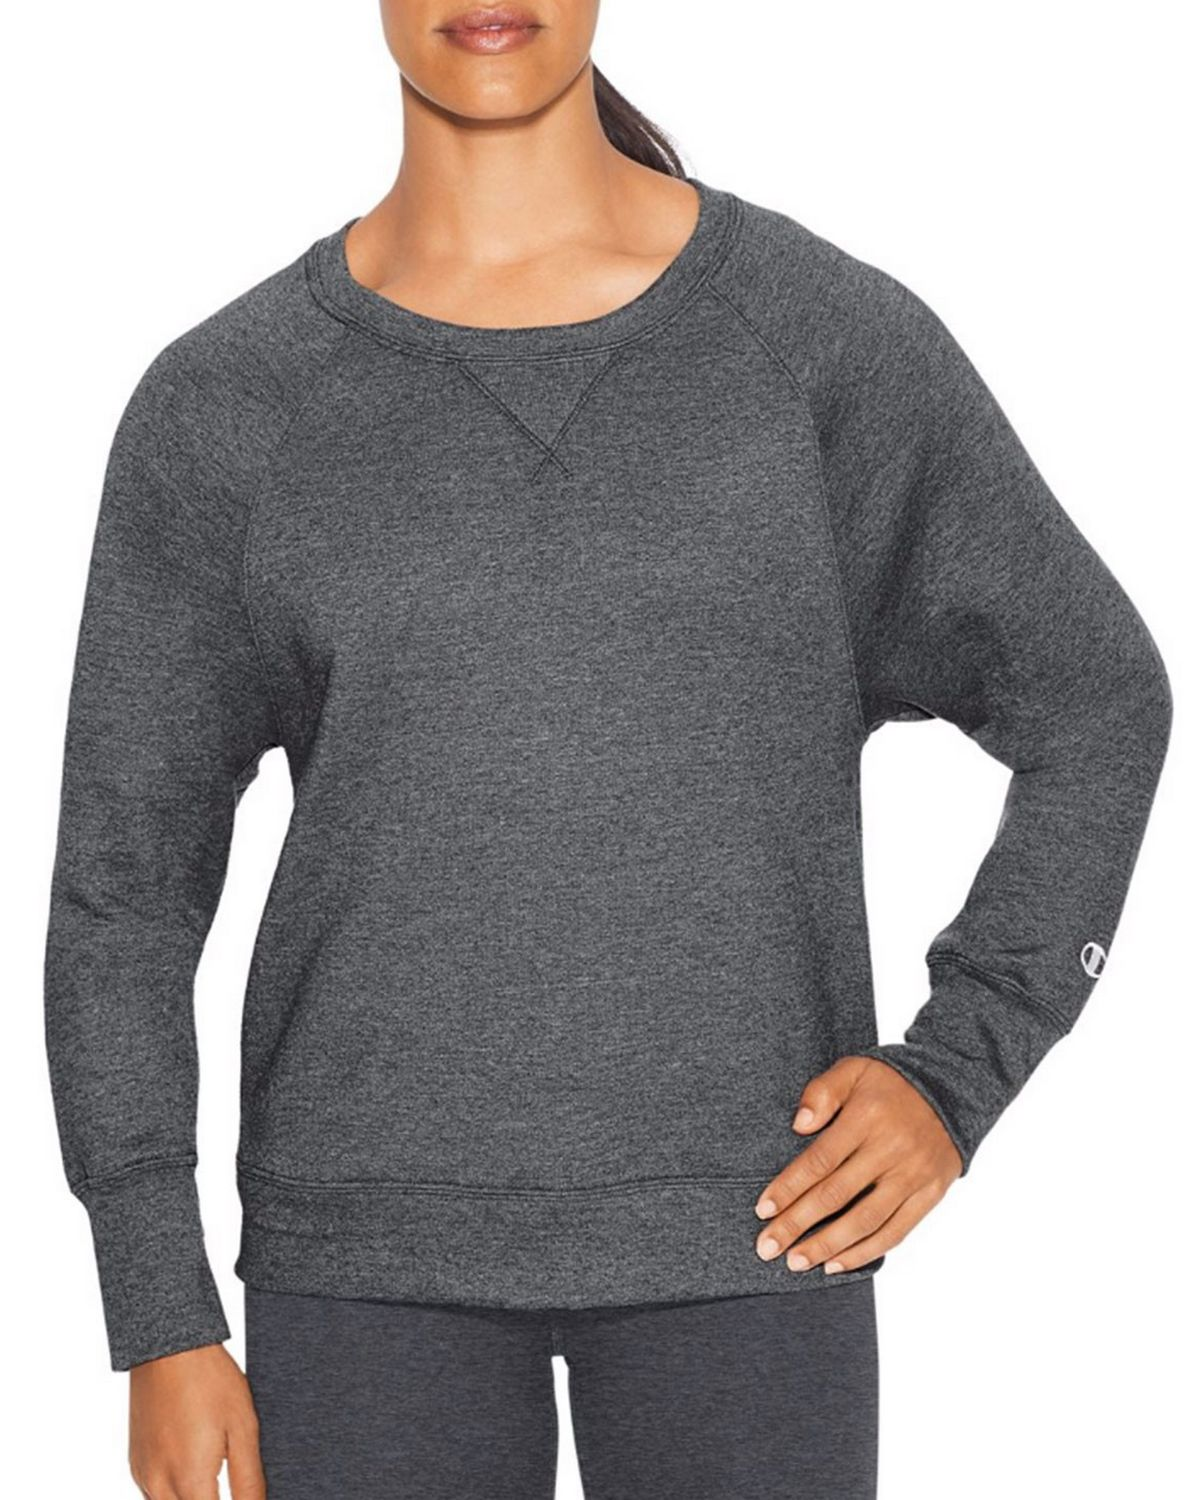 Champion W29567 Womens Boyfriend Crew - Granite Heather - XL W29567